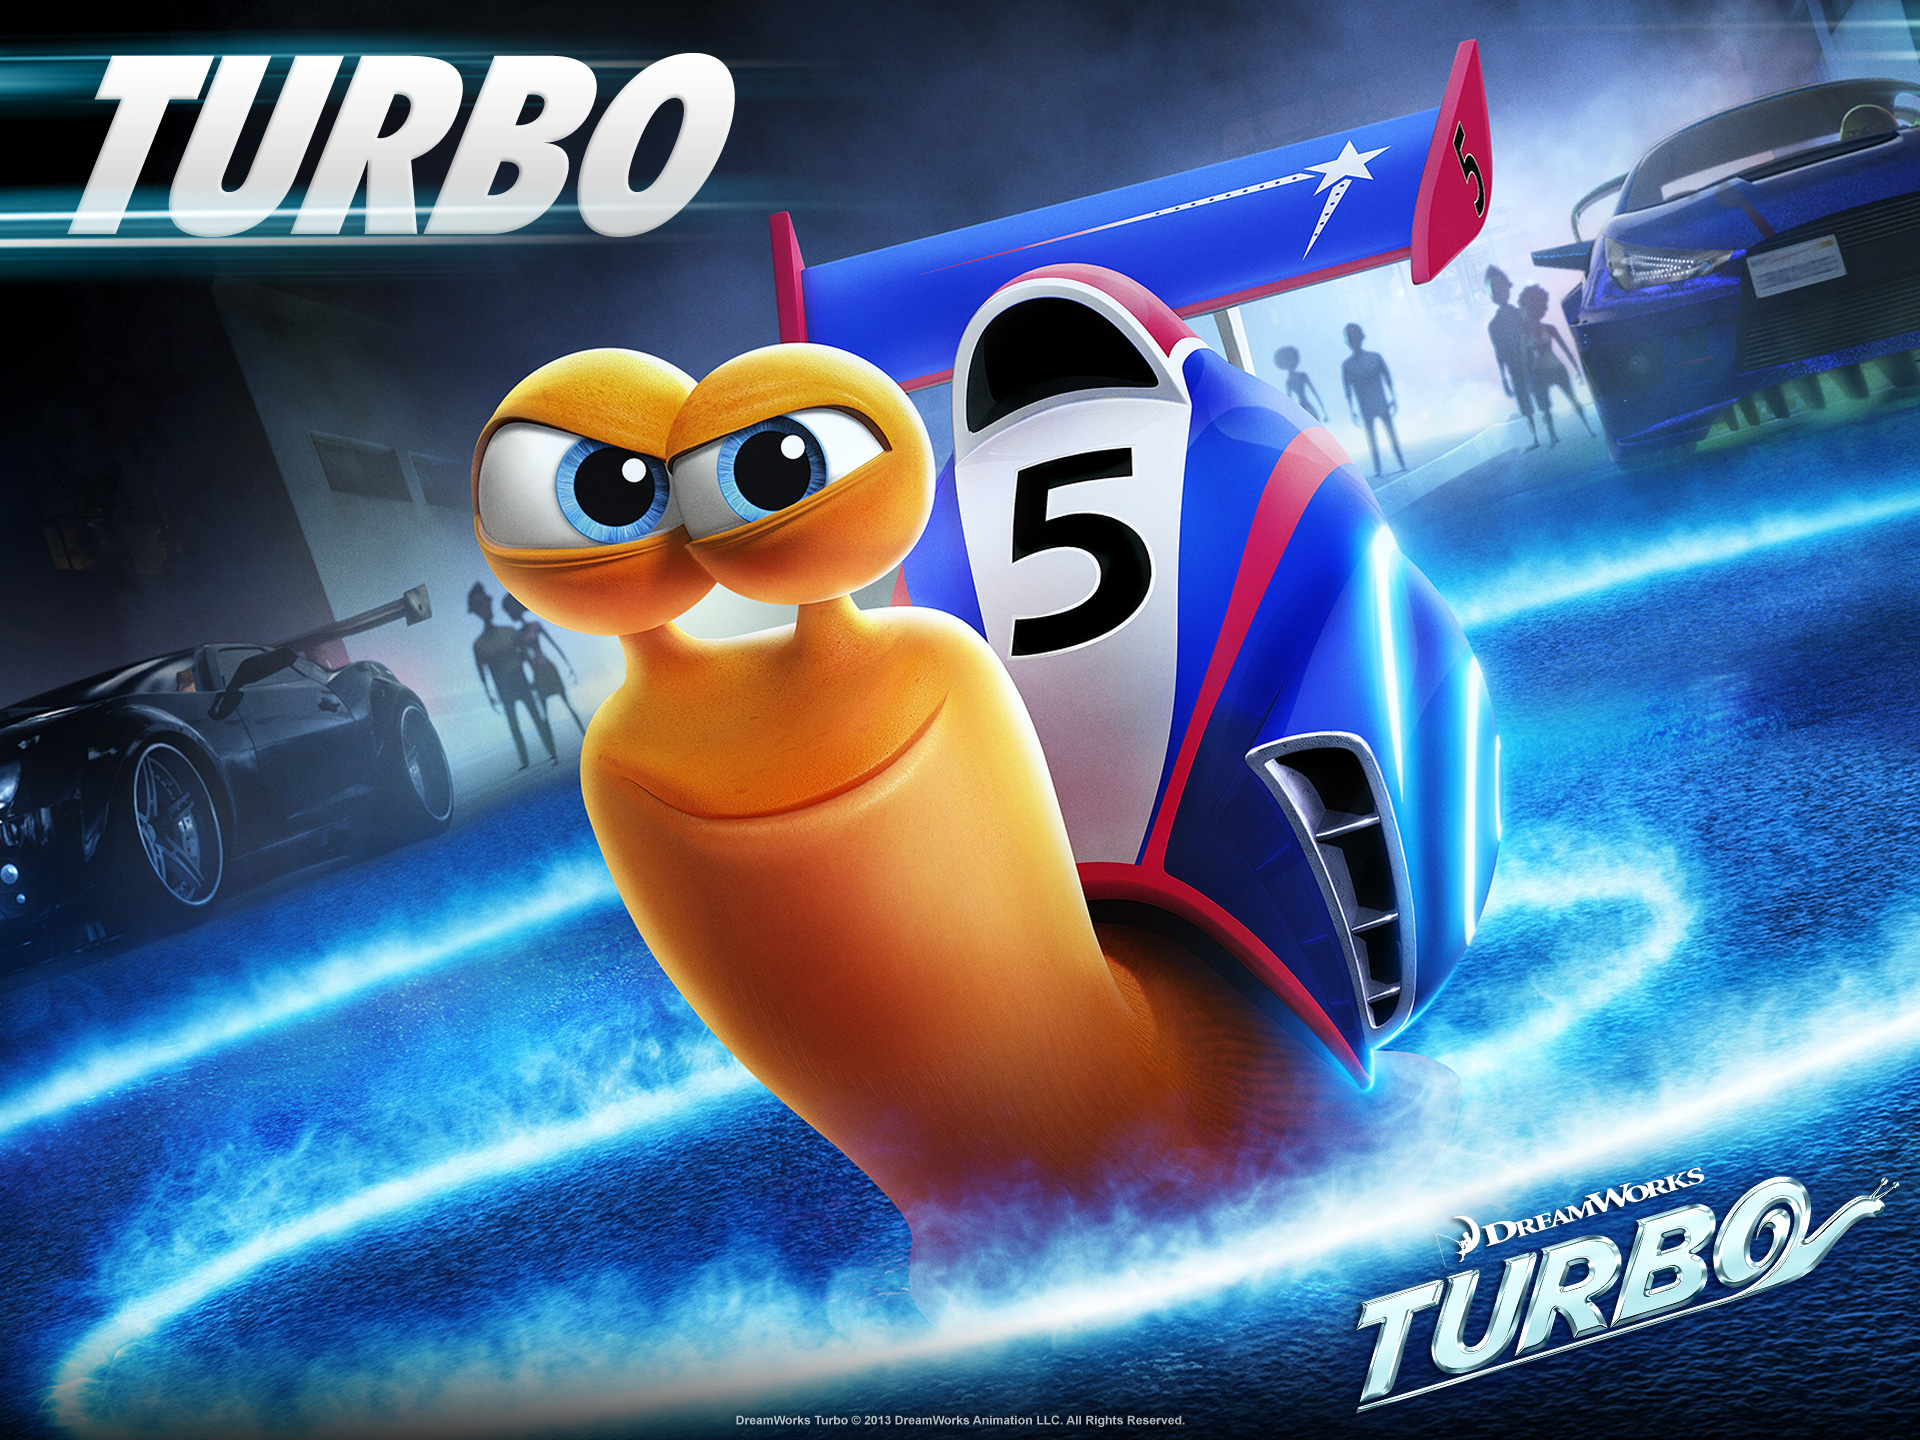 Be Turbo 29 Turbo Hd Wallpapers Background Images Wallpaper Abyss